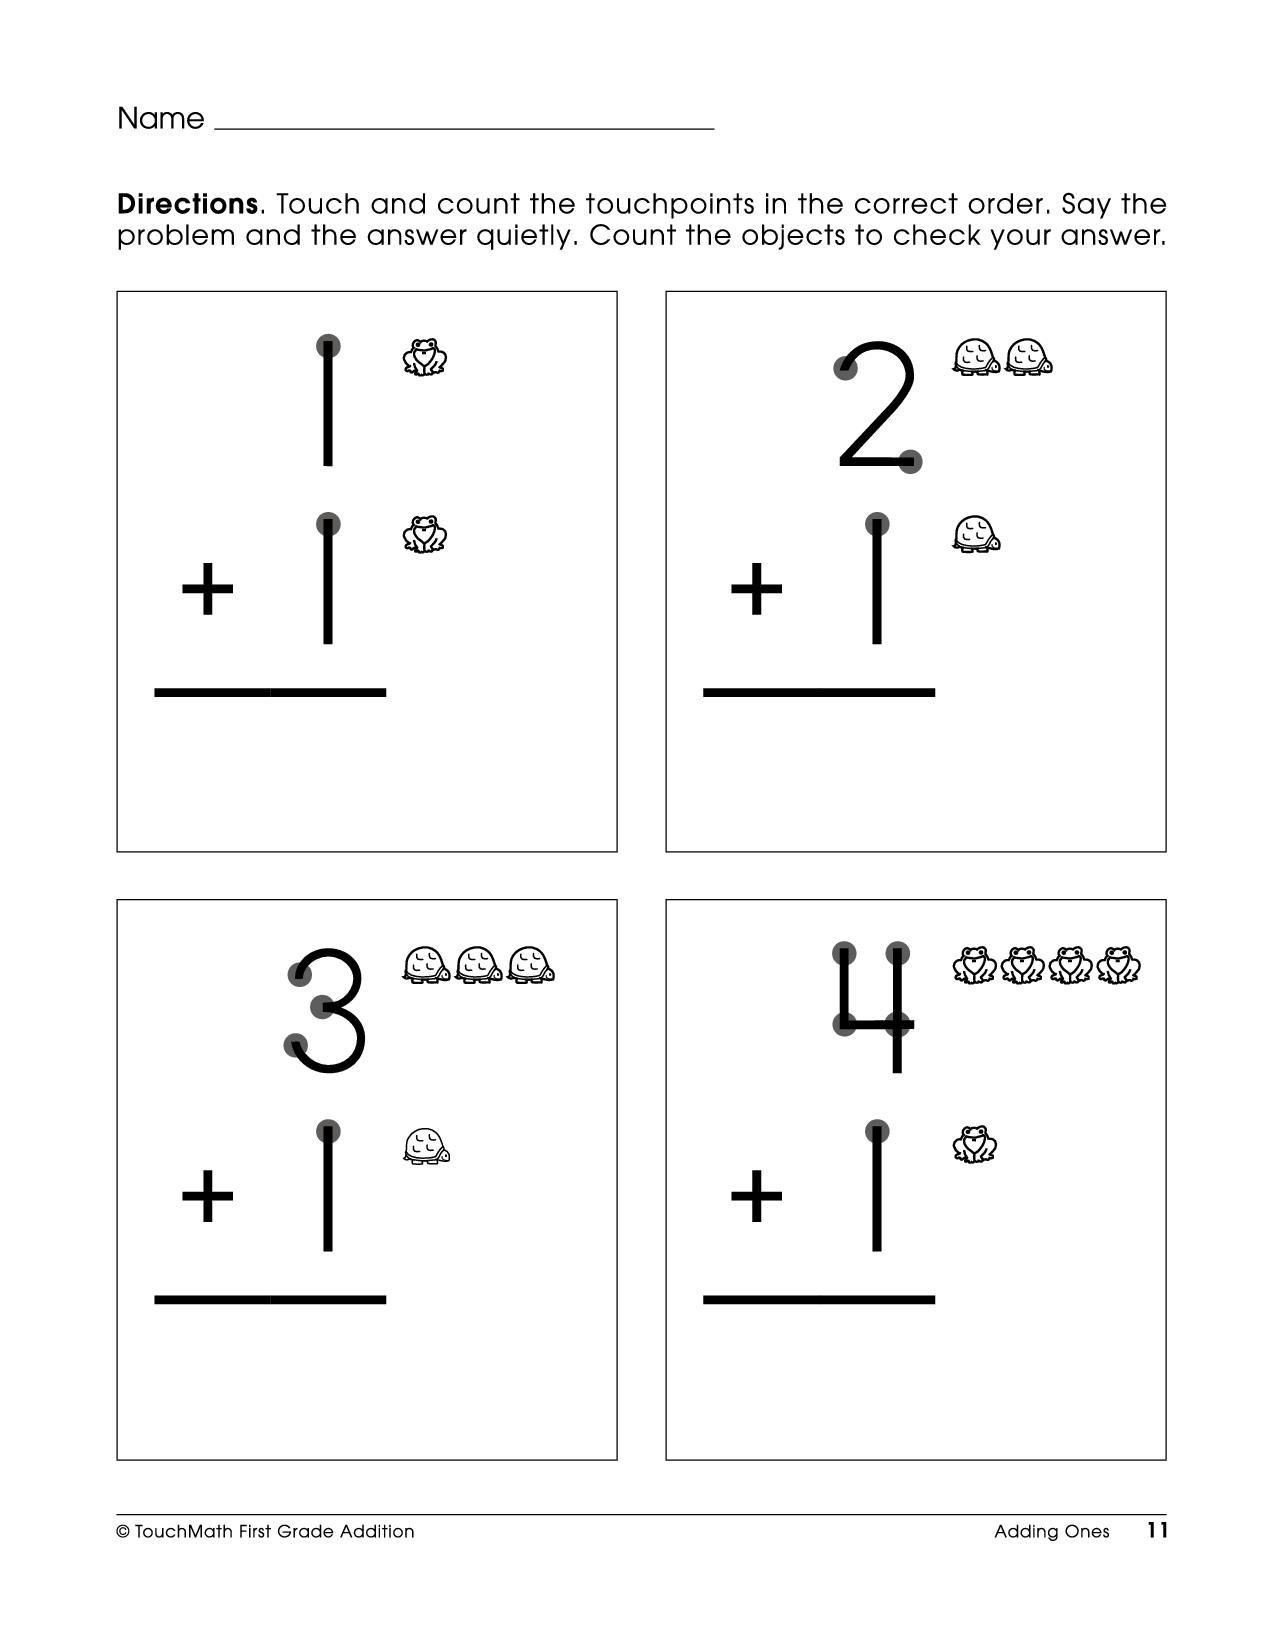 Touch Math Worksheet Generator touch Math Subtraction Worksheets Free Printable touchpoint